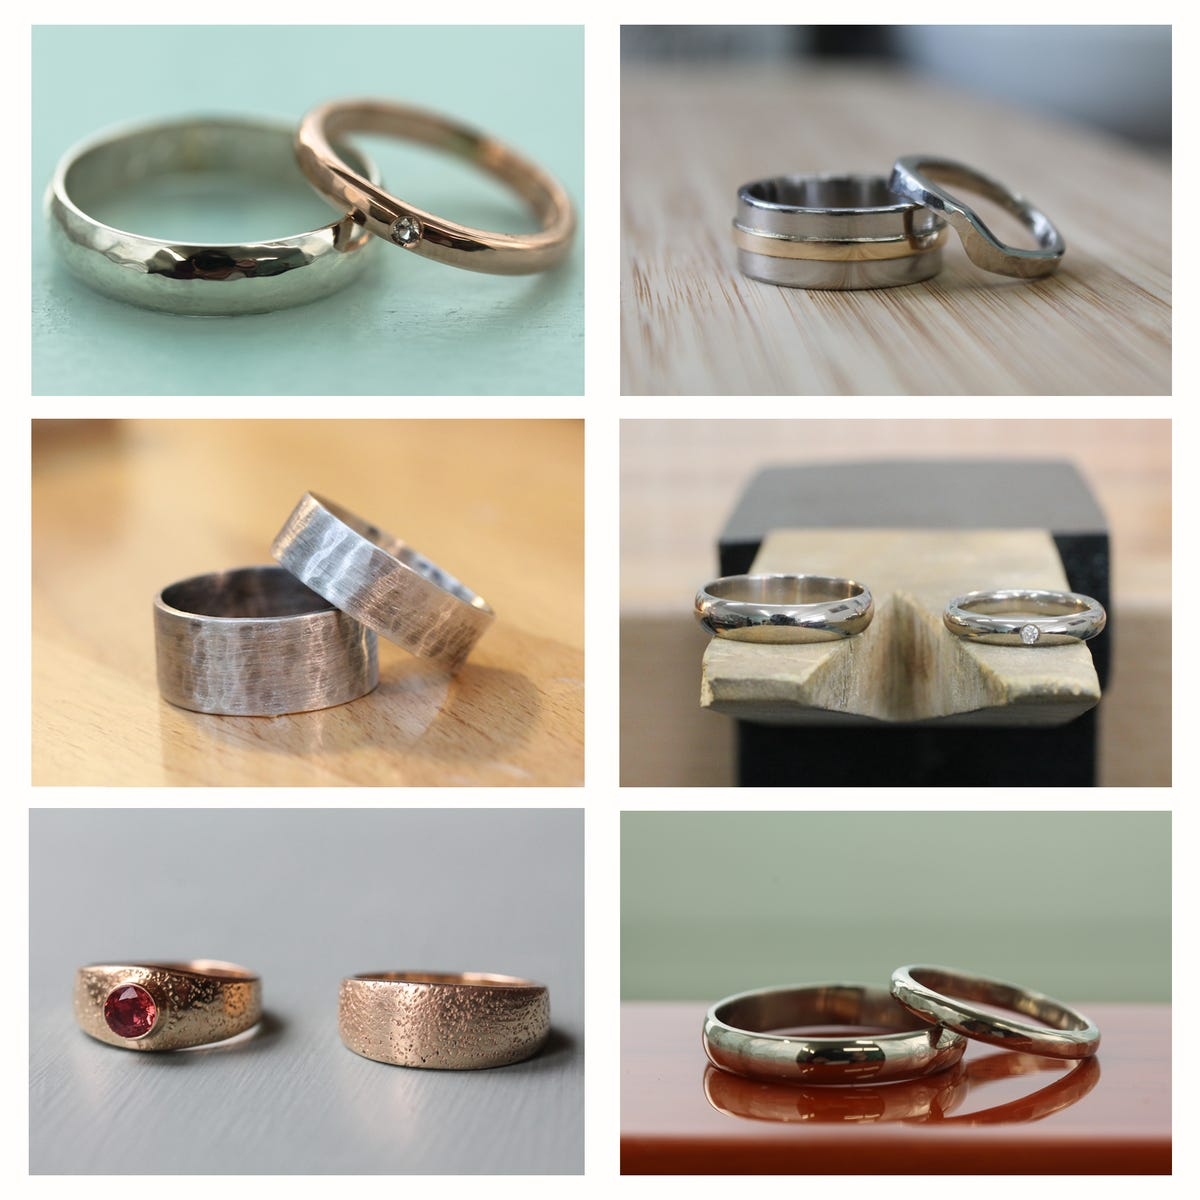 Custom wedding bands made from gold teeth and more